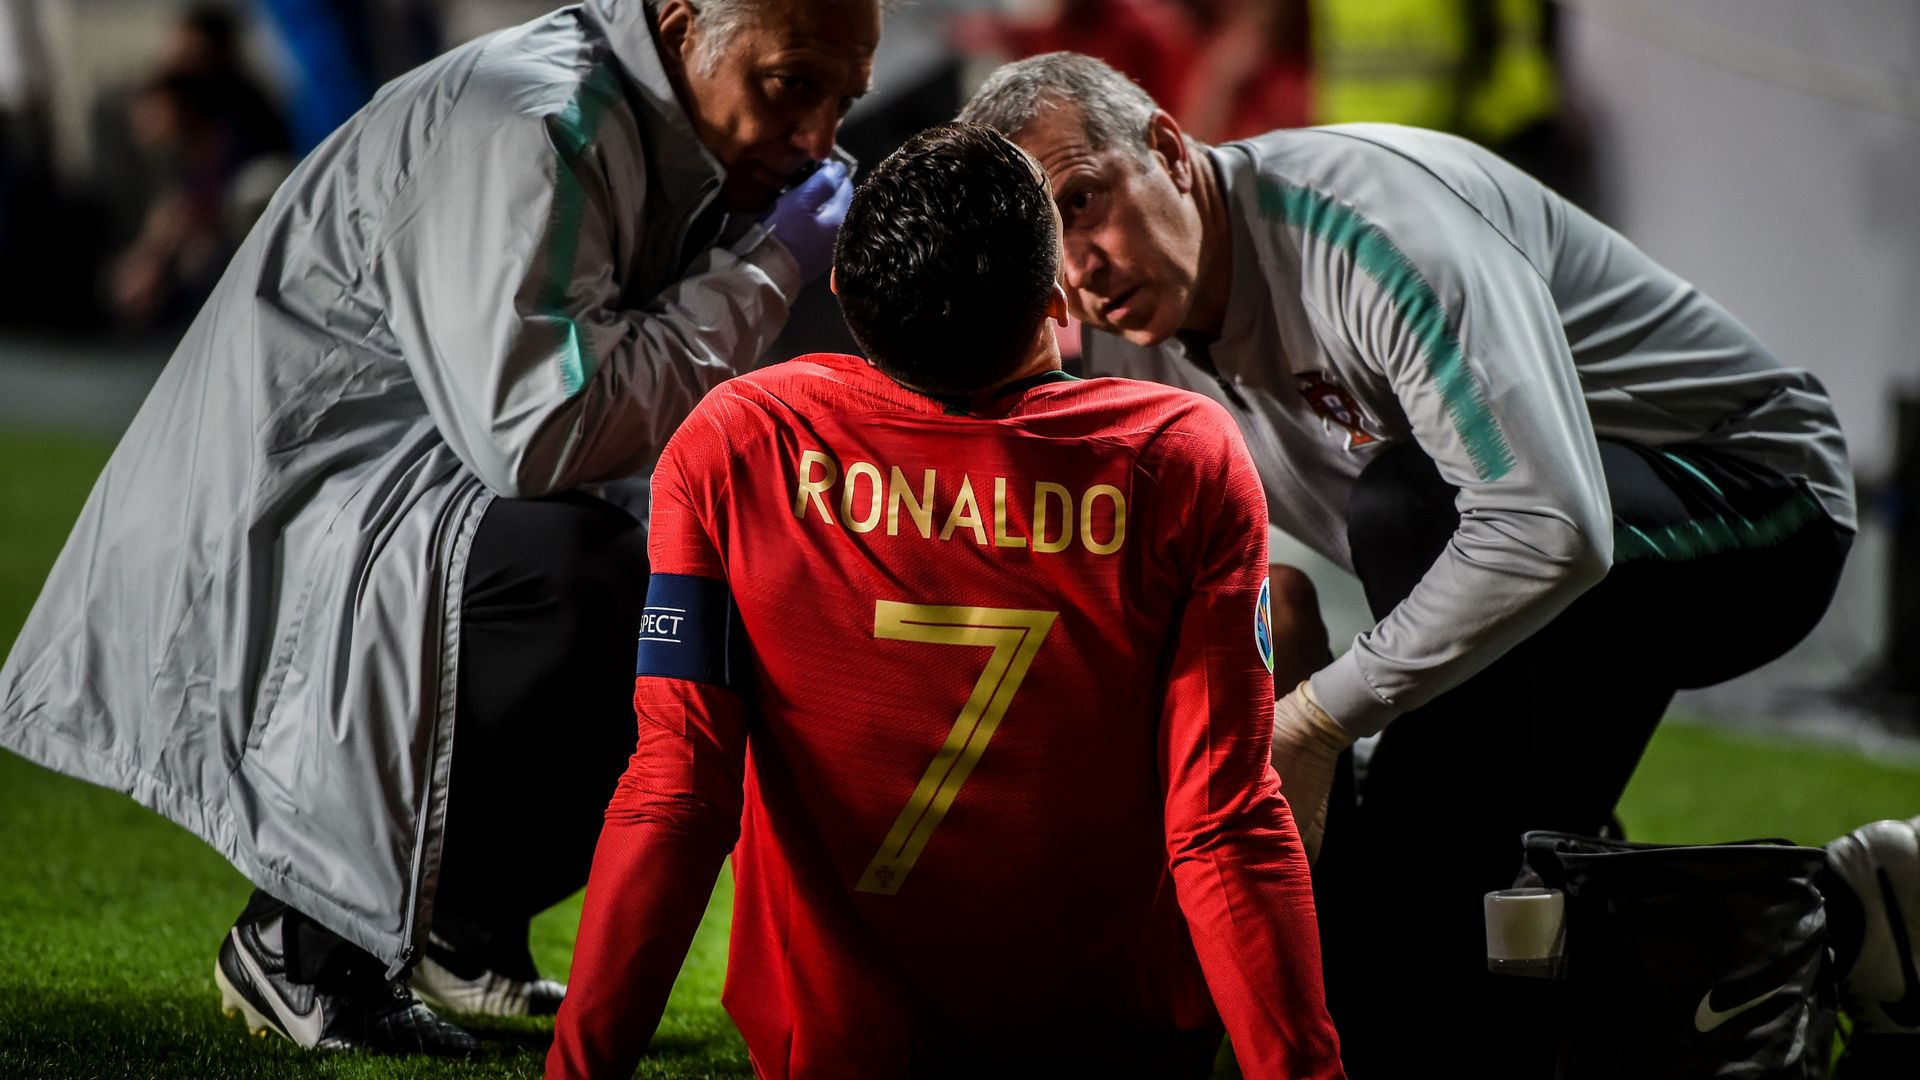 Portugal v Serbia: Cristiano Ronaldo suffers hamstring injury